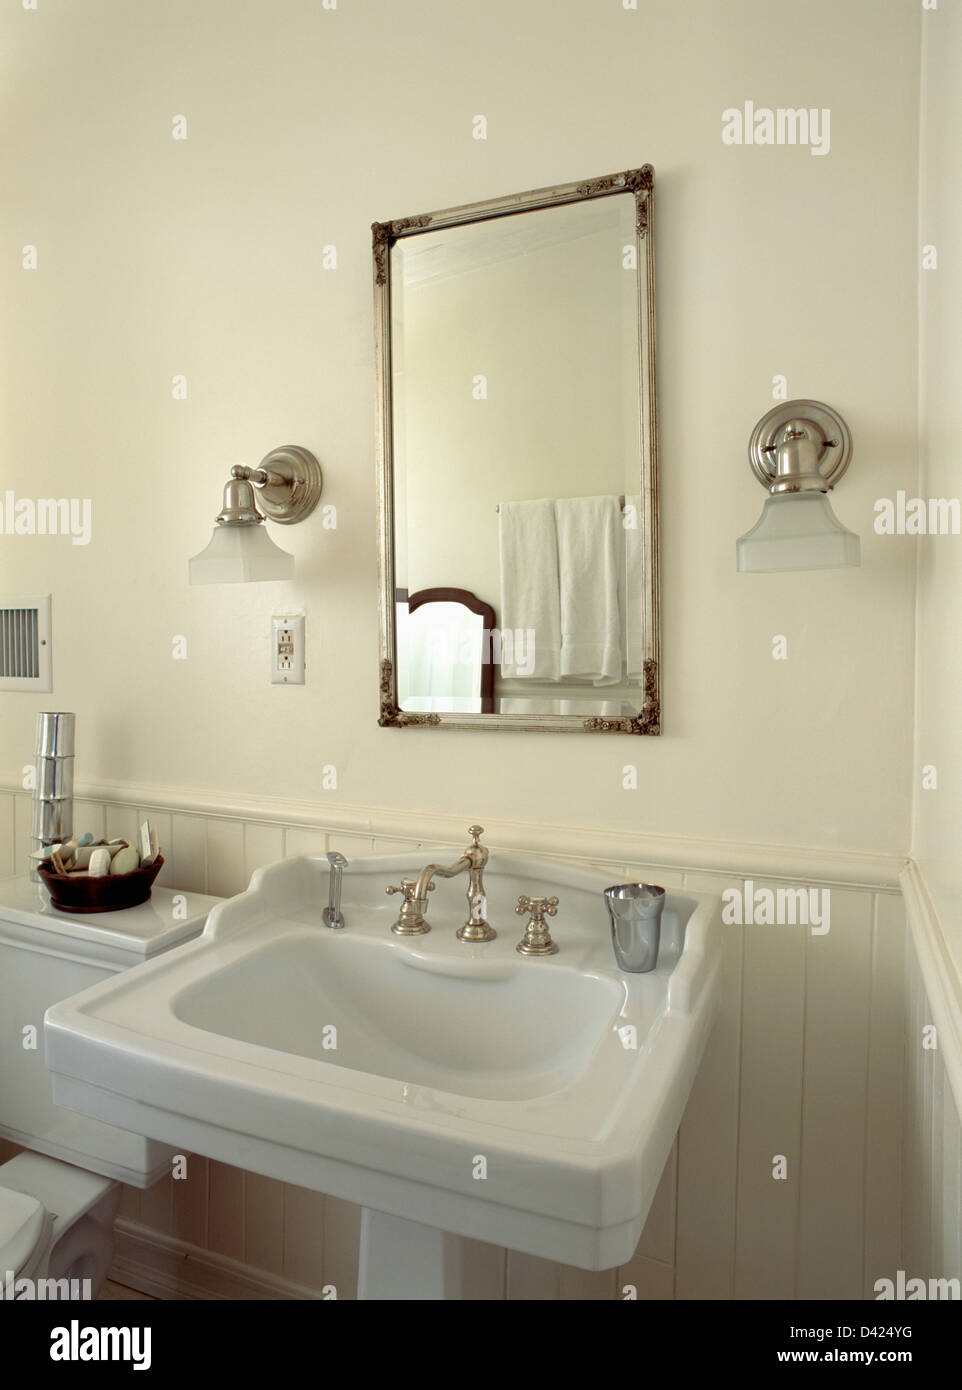 Awesome 40 Bathroom Lights Either Side Of Mirror Design Decoration Of Best 20 Bathroom Mirrors